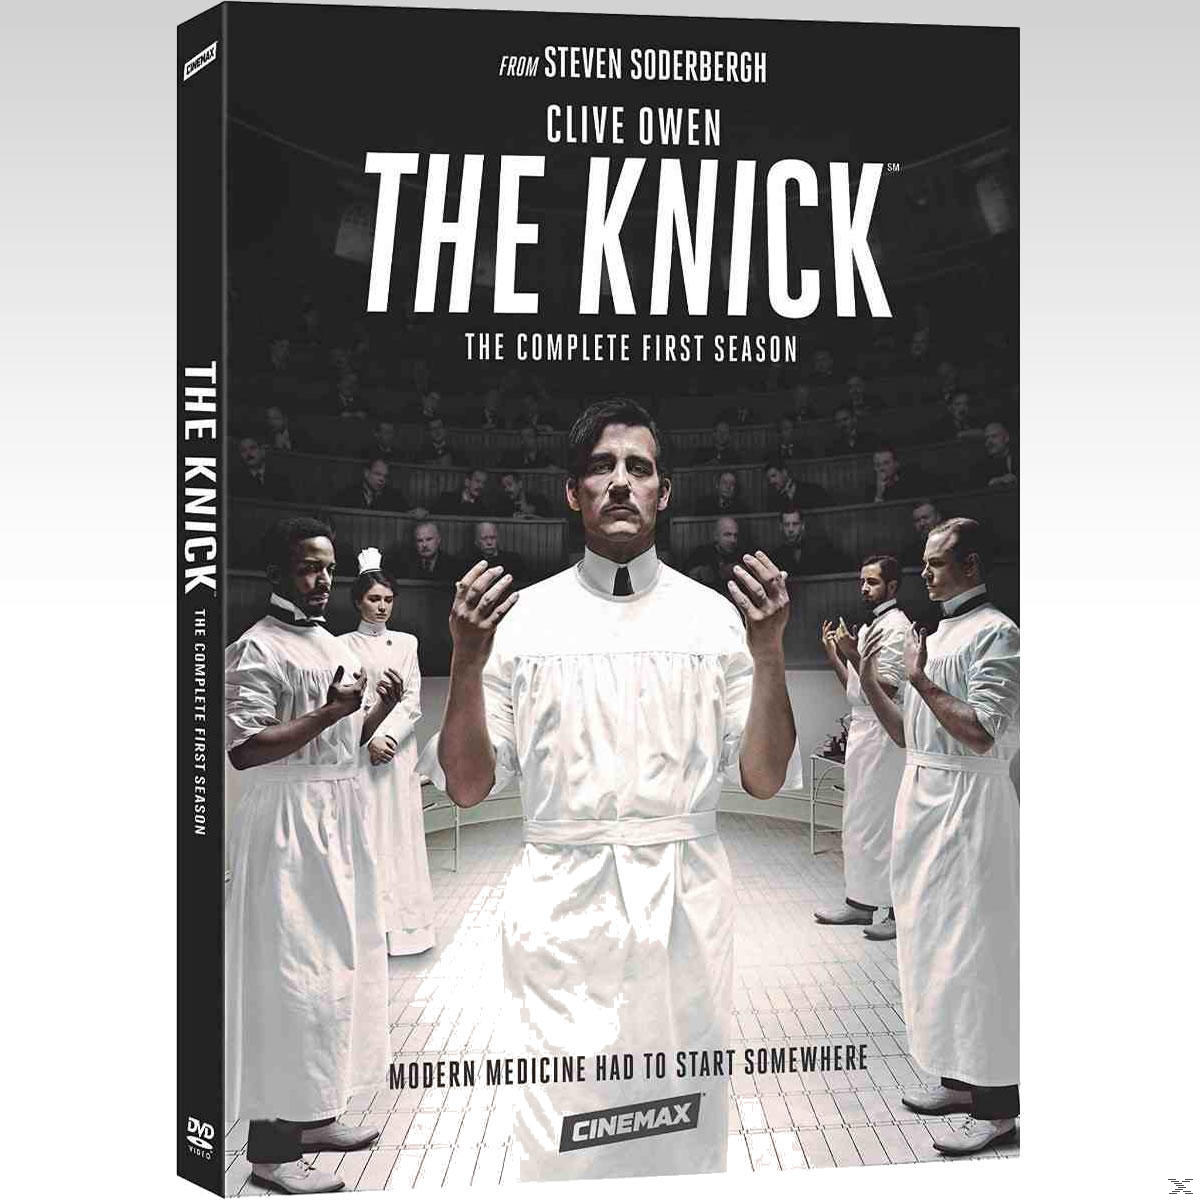 THE KNICK S 1